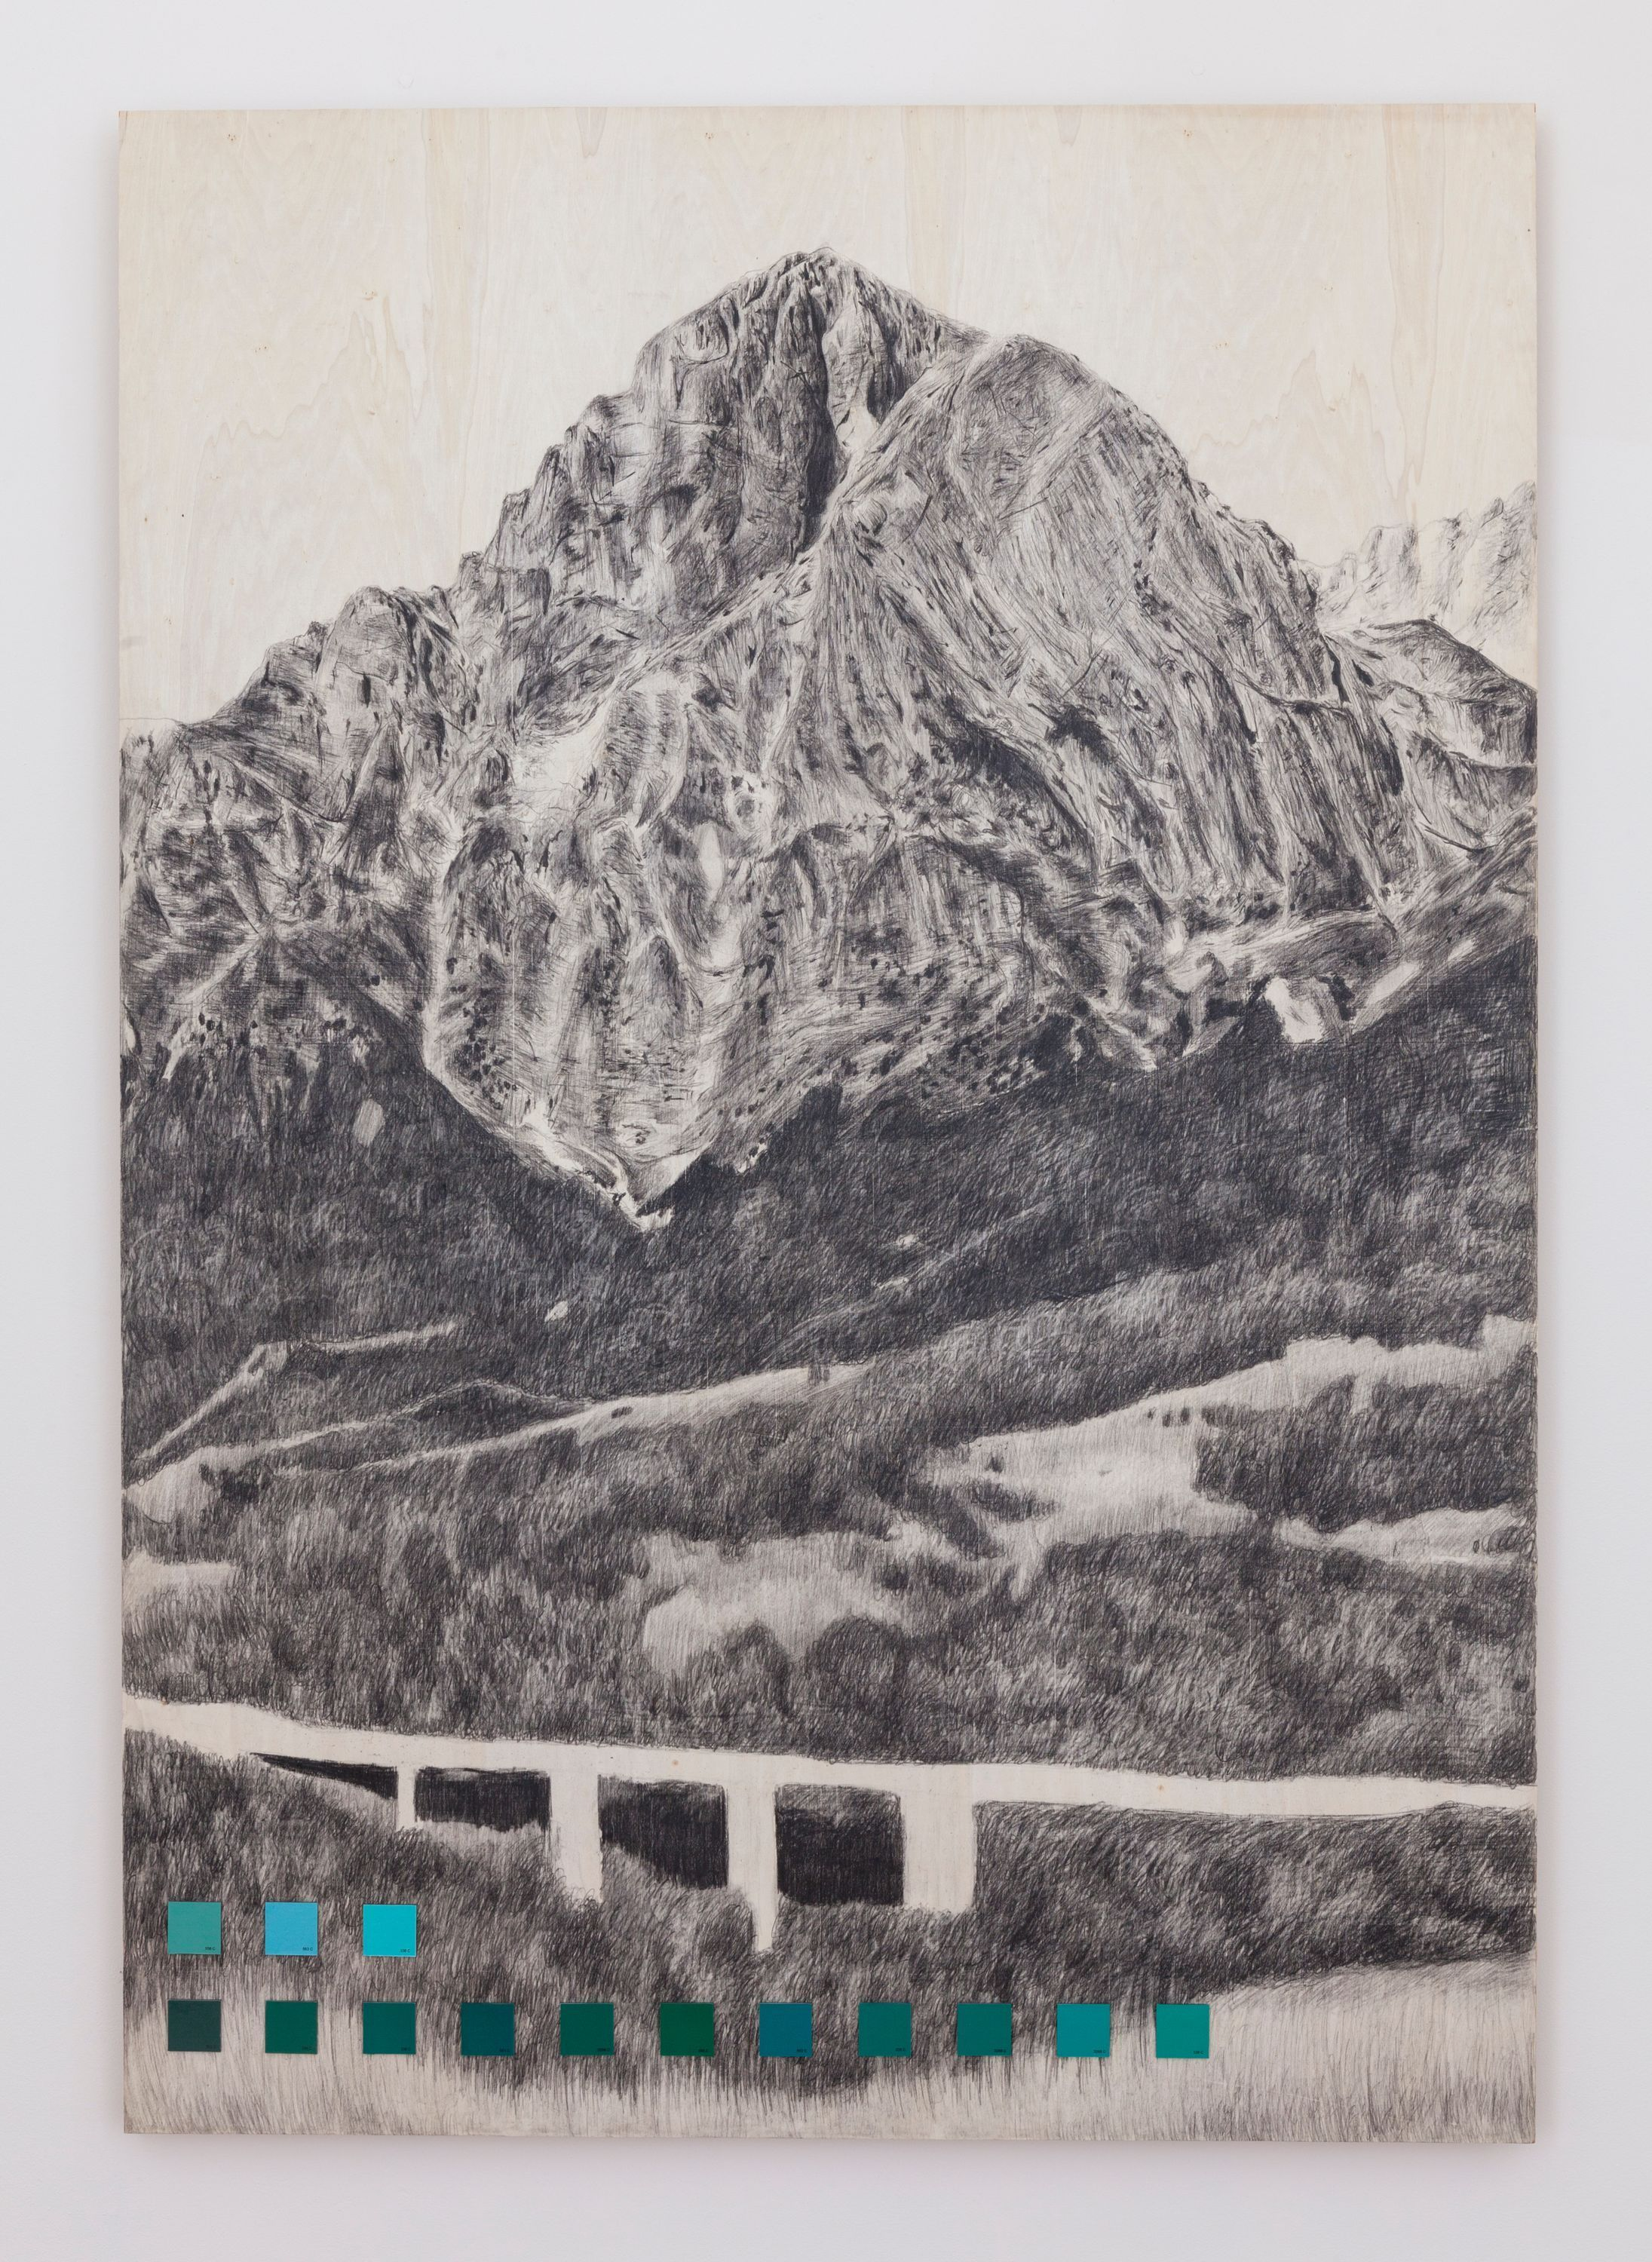 Welcome to Gransasso / 1 by Giuseppe Stampone, MLF | Marie-Laure Fleisch, Brussels (2 of 2)